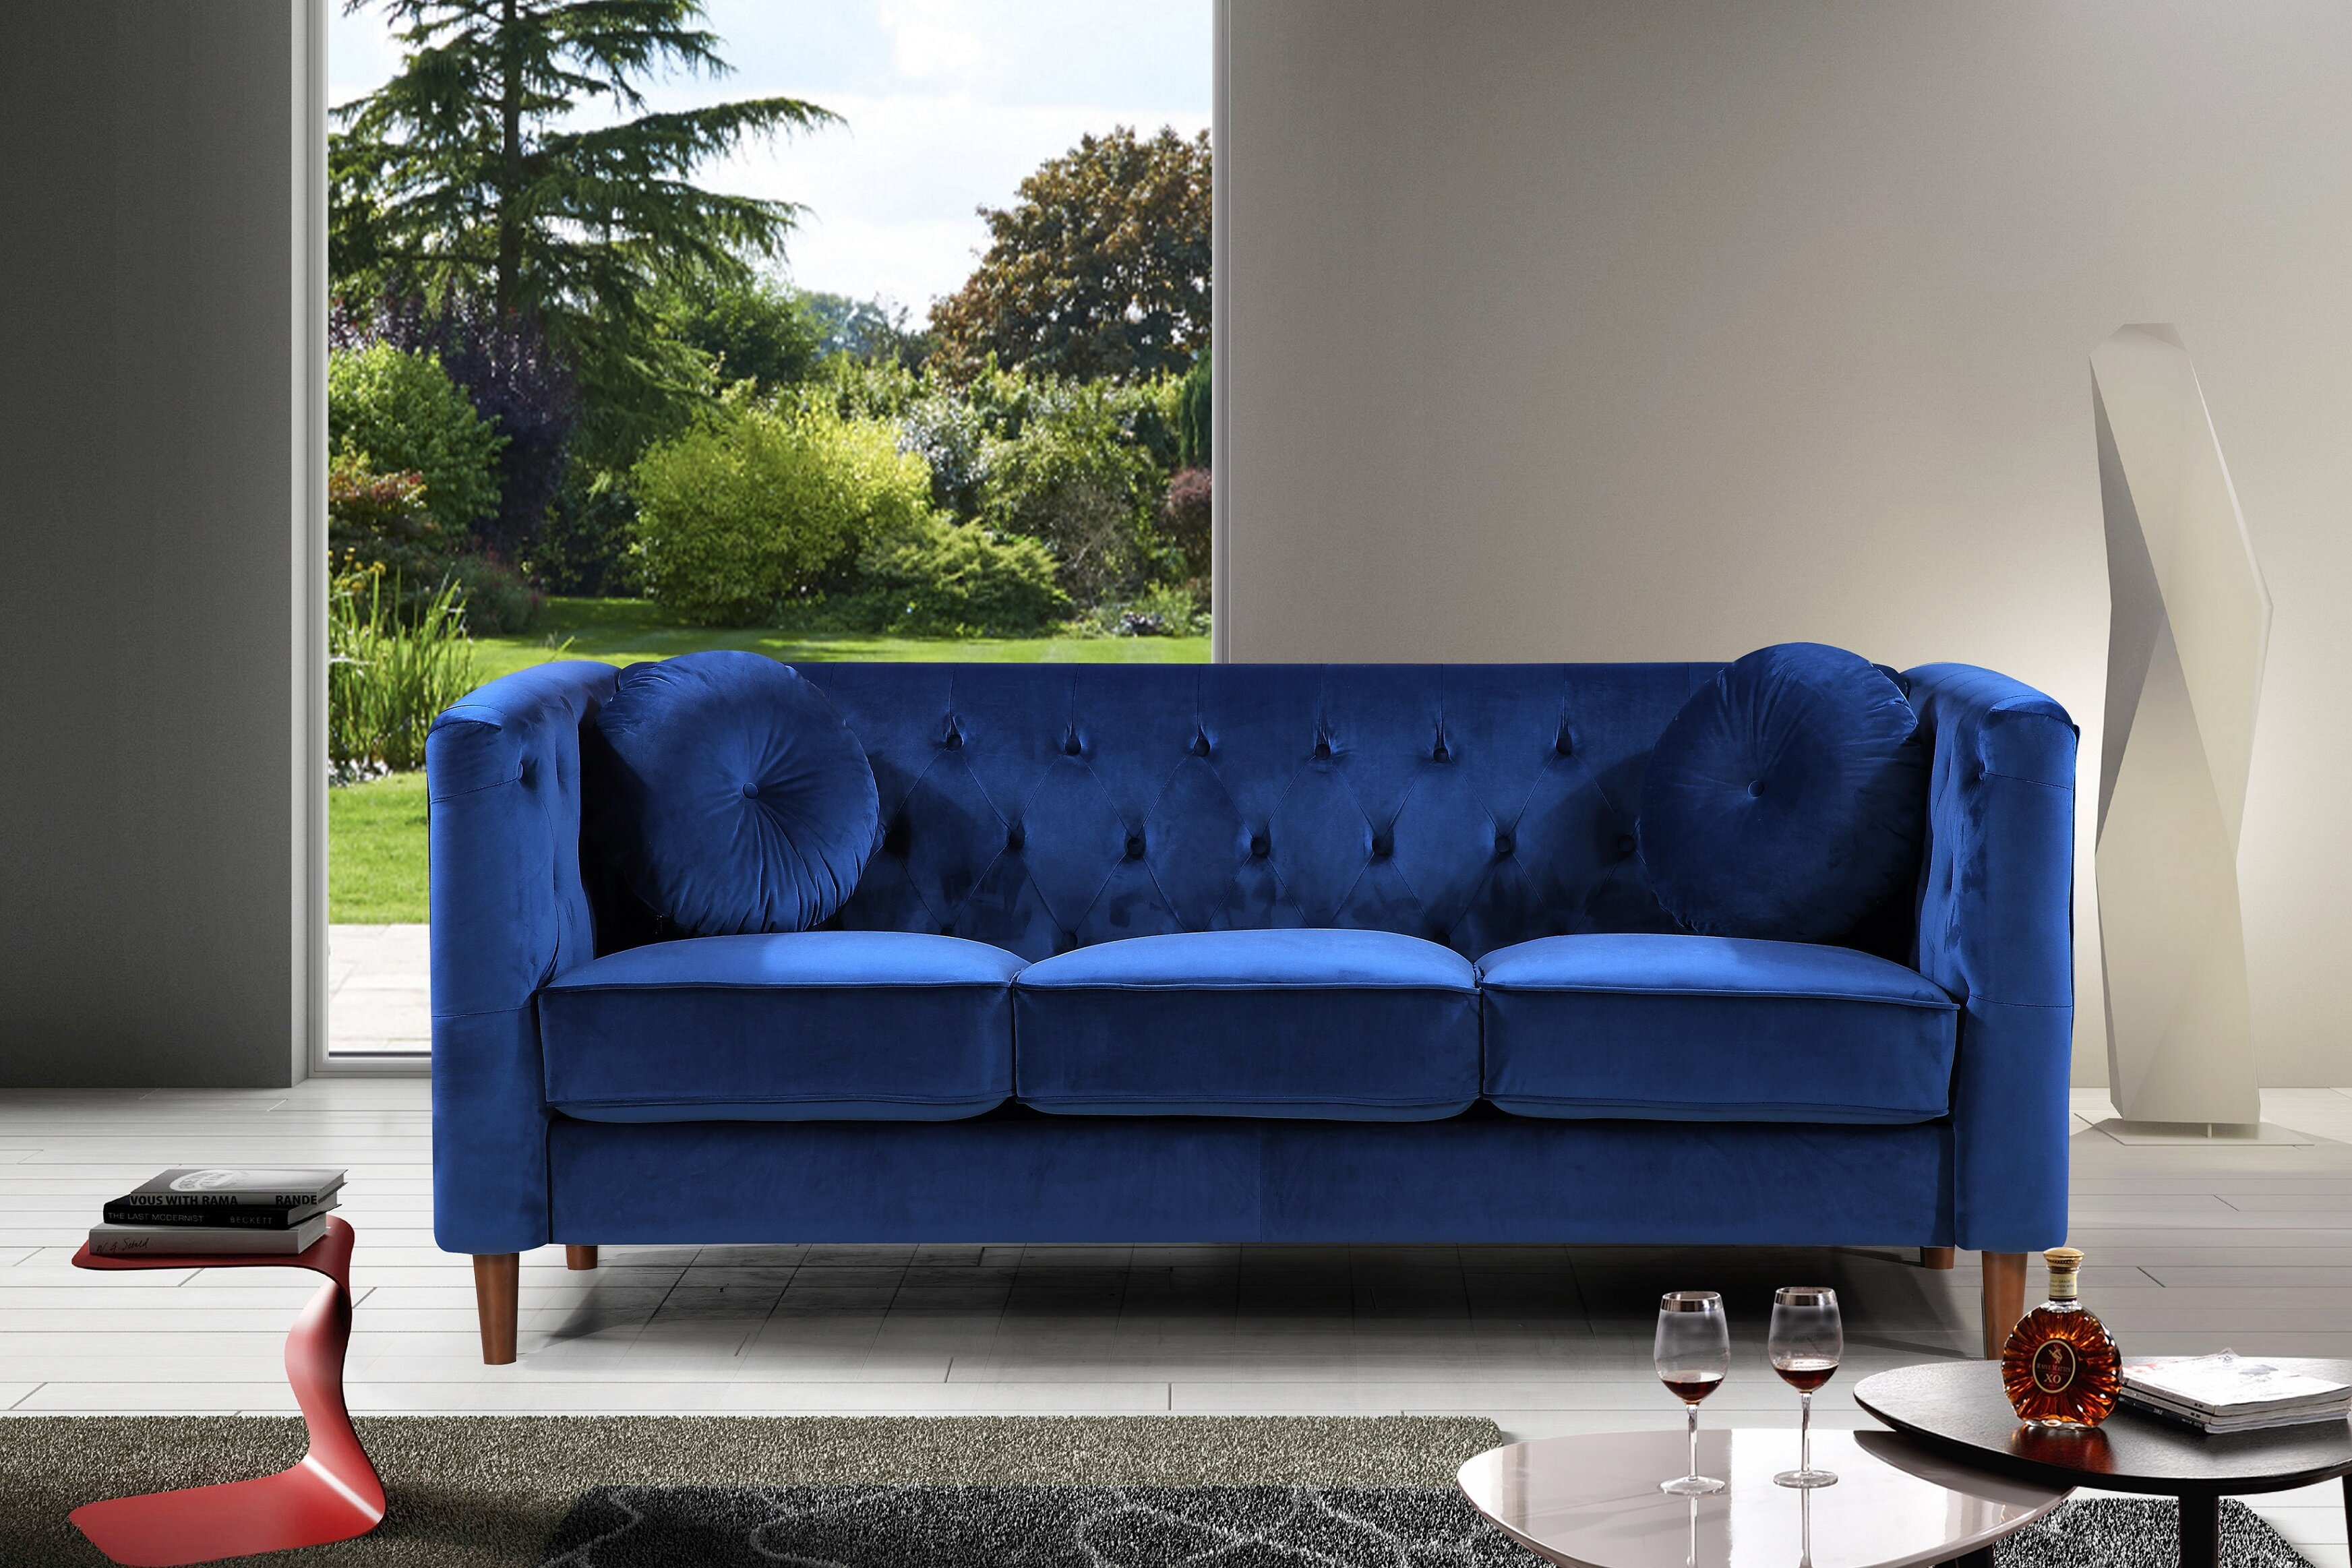 Kitts Classic Chesterfield Sofa